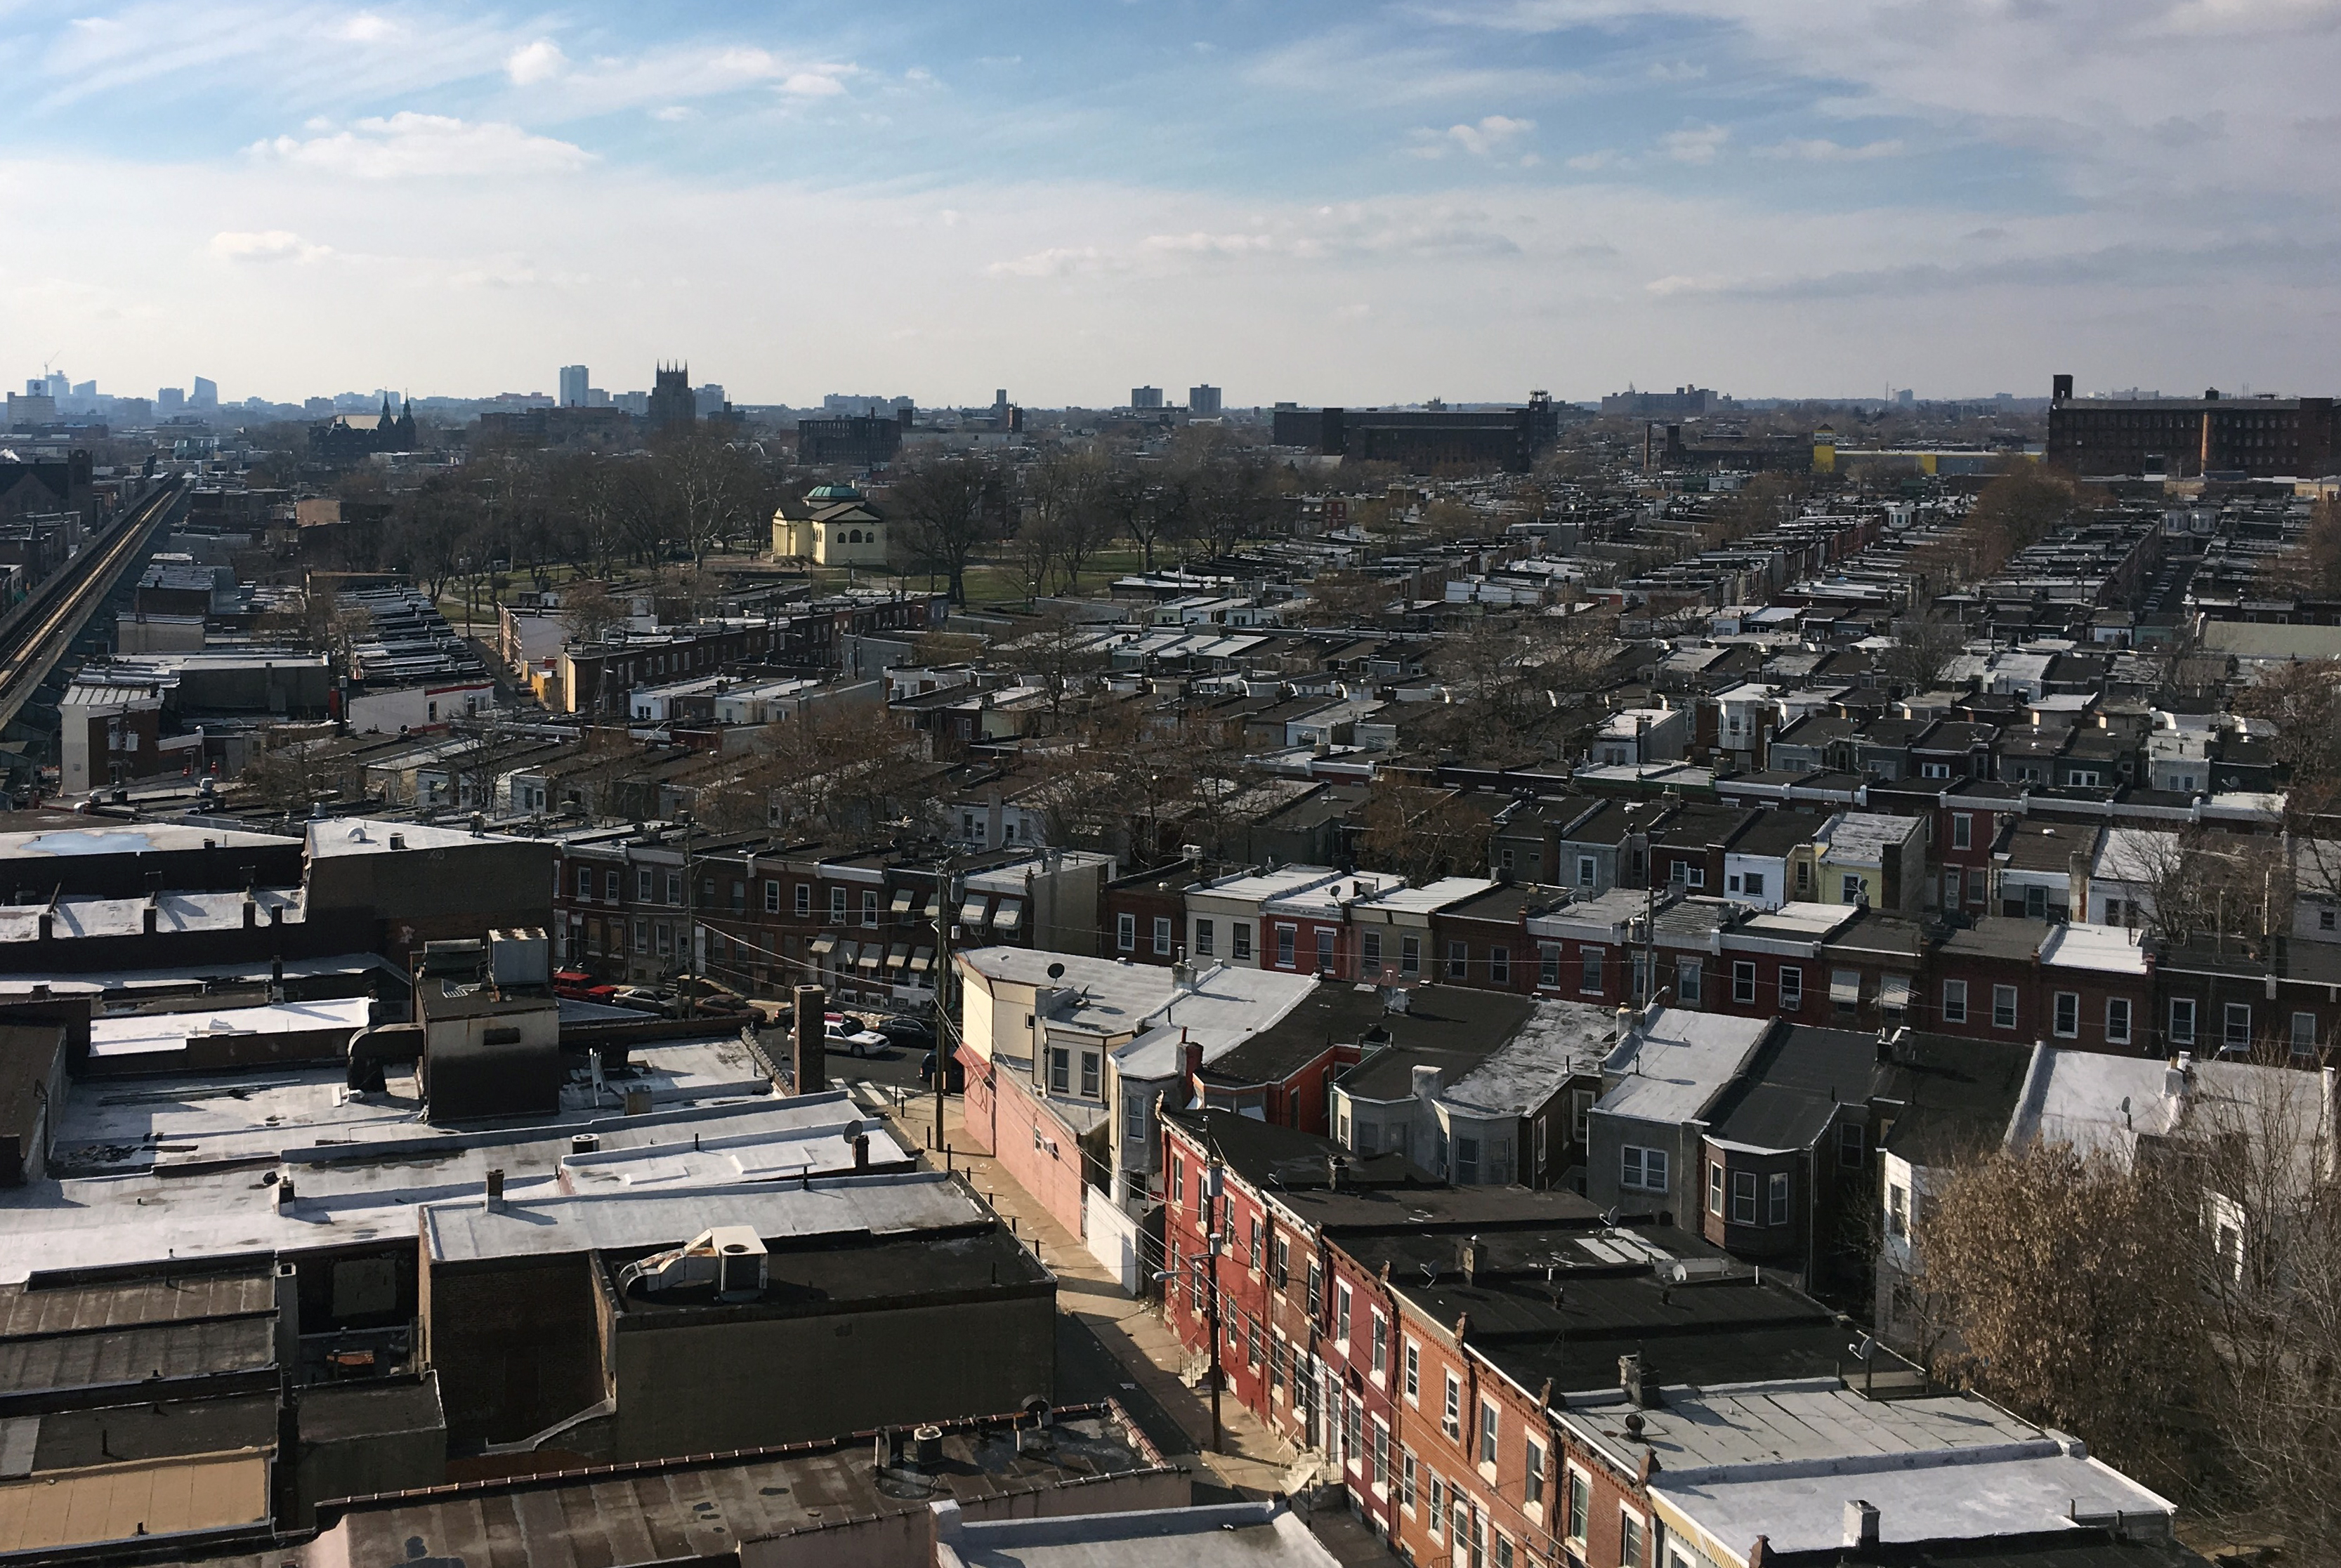 Looking south on the area of Kensington bordered by Allegheny Ave. in the north, Lehigh Ave. to the south, Kensington Ave. to the east, and Front St. to the west. A note on the place names: To quote a Philadelphia neighborhood guide manual from 1975